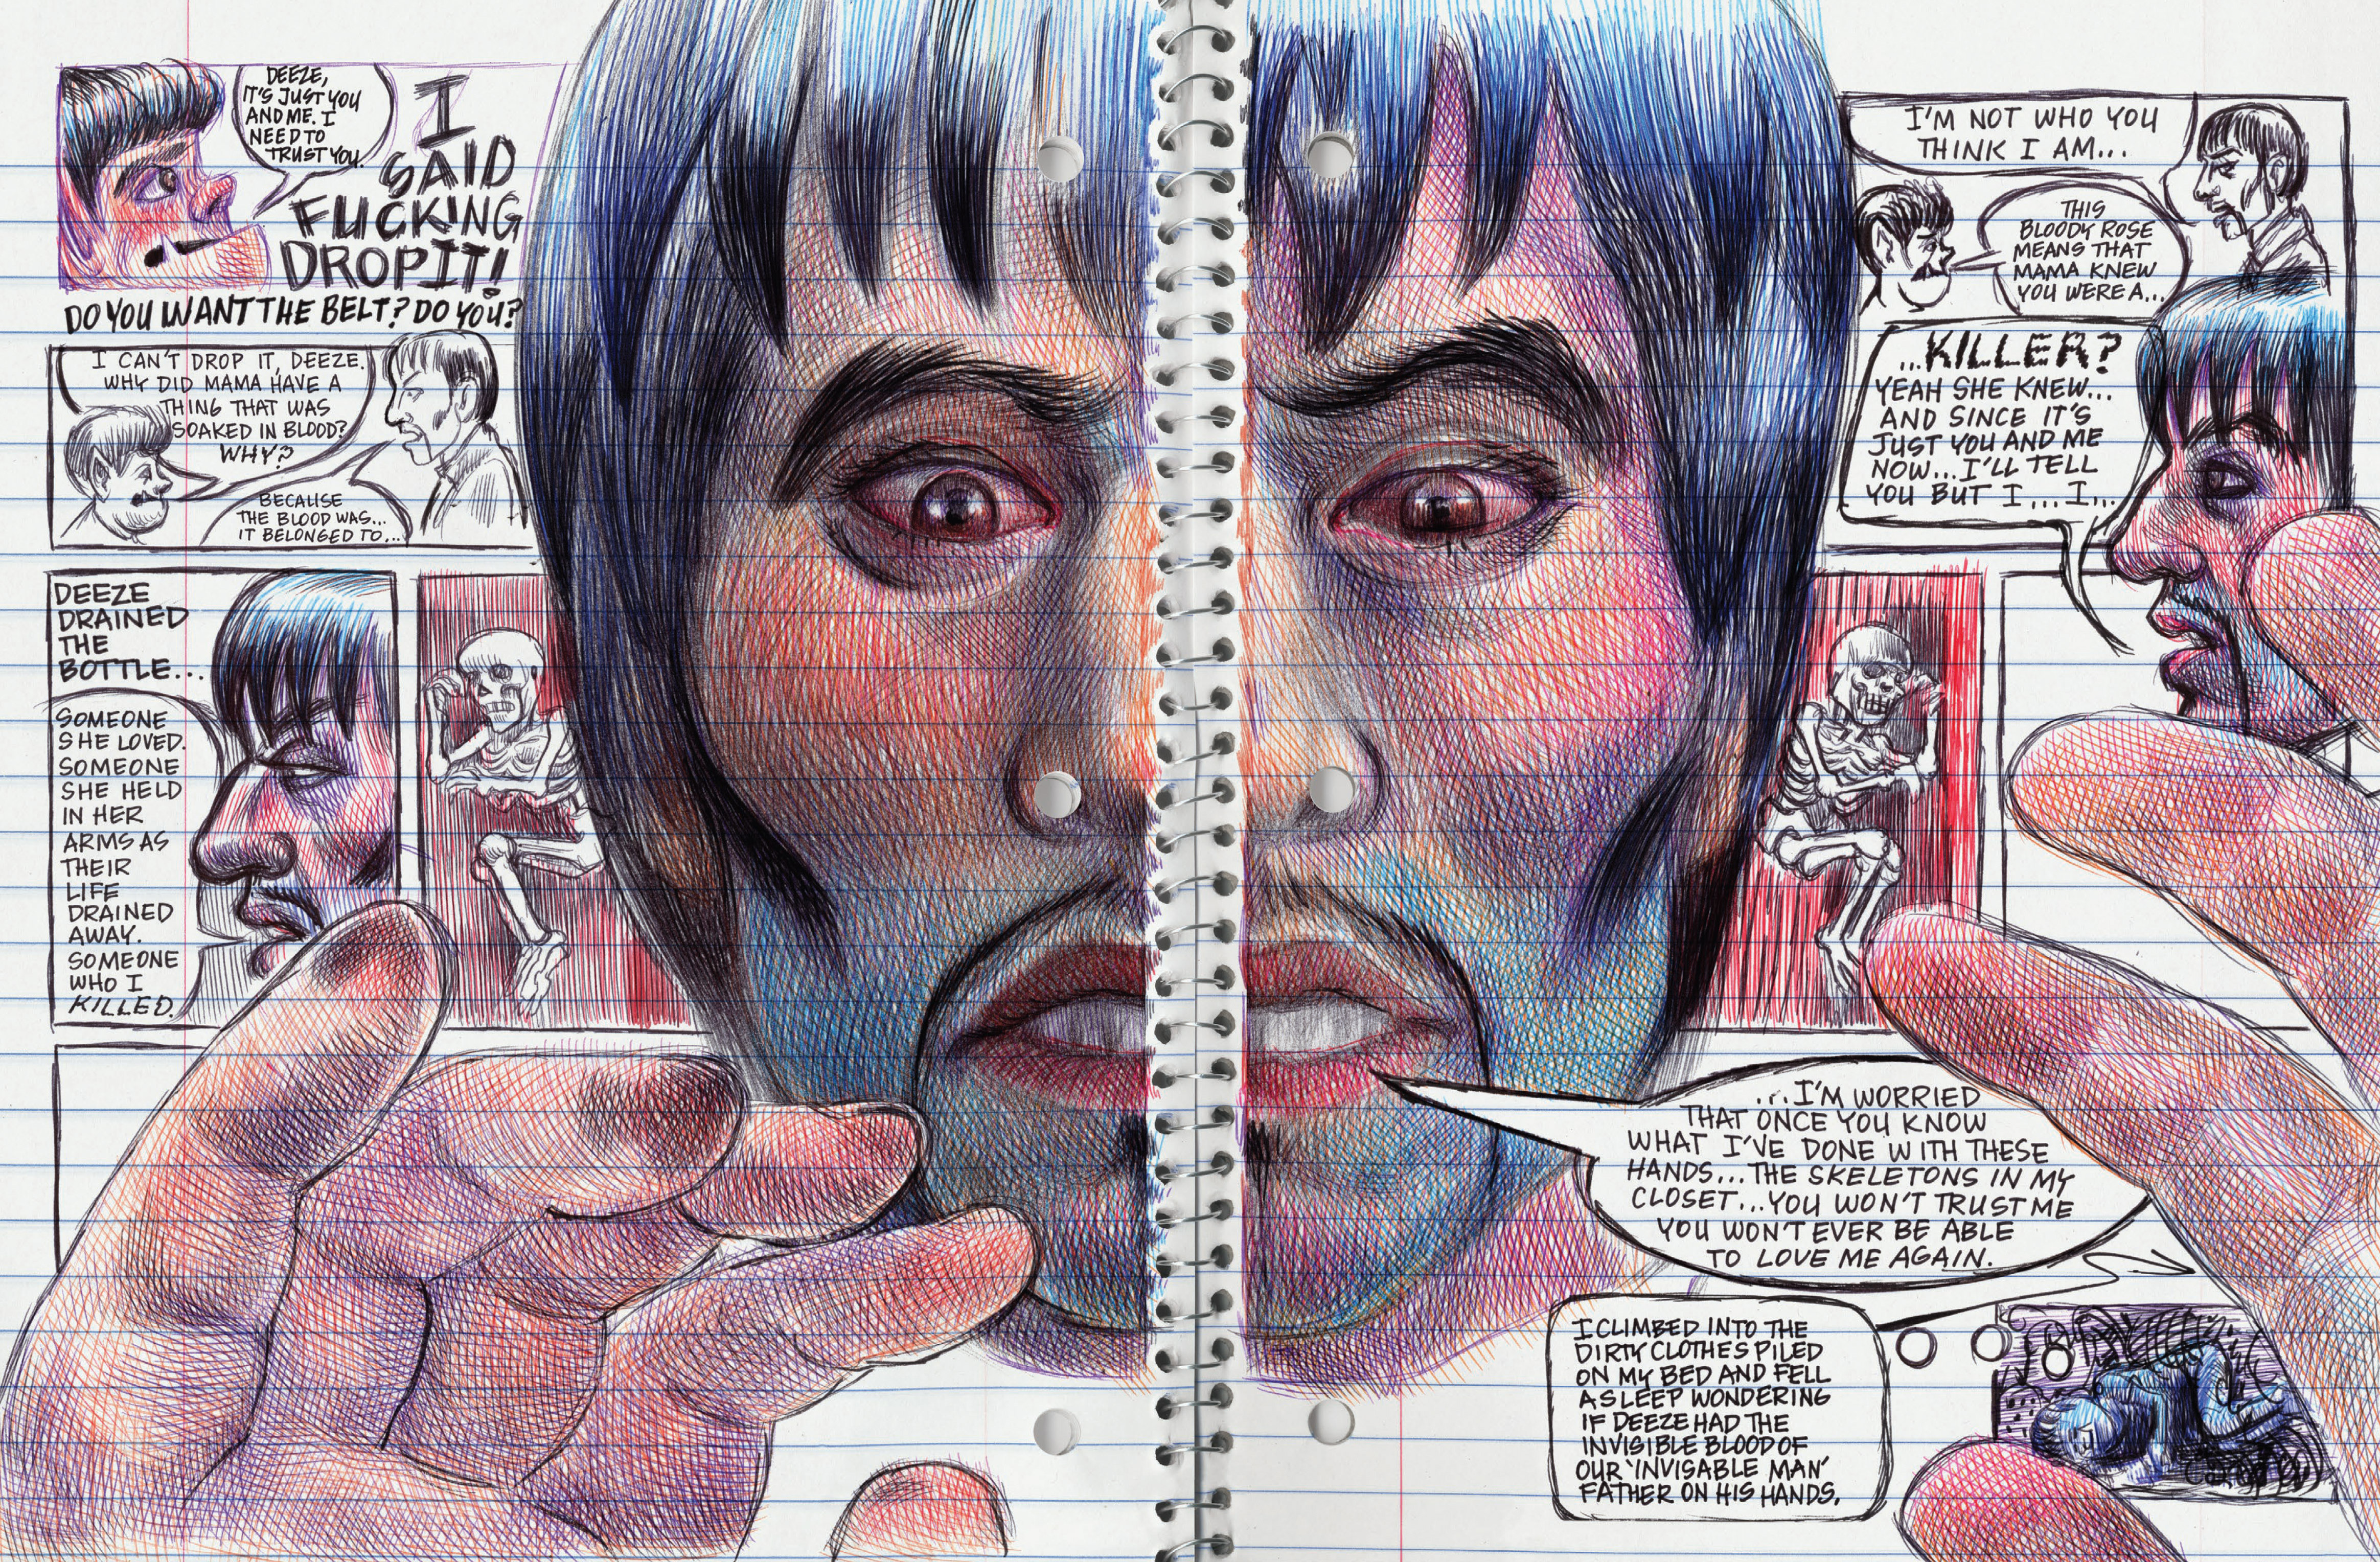 Read online My Favorite Thing is Monsters comic -  Issue #1.5 - 179